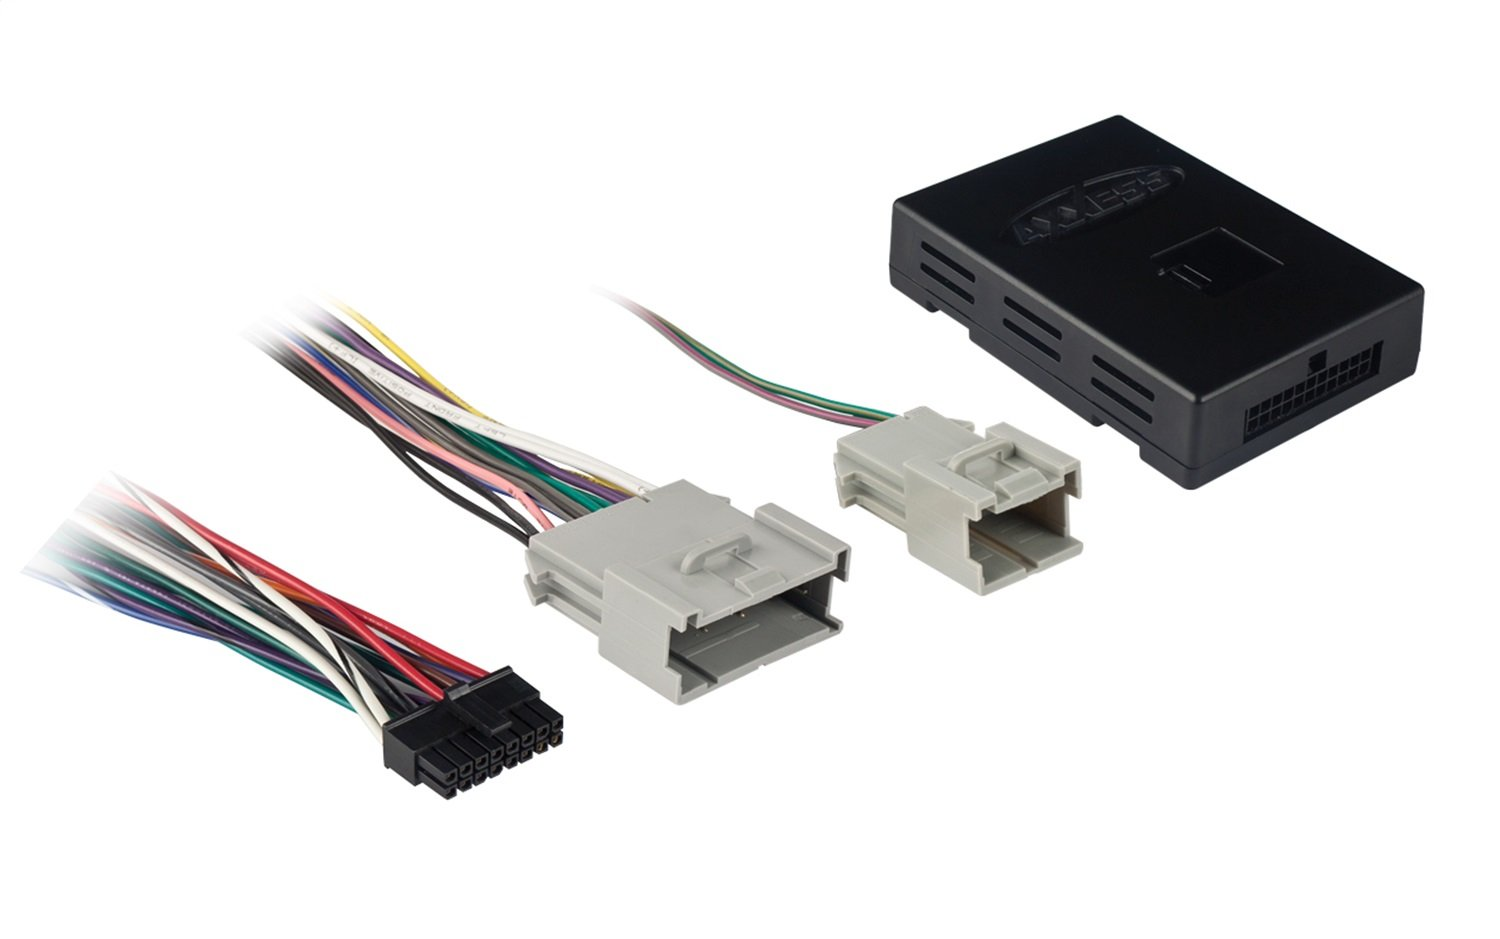 Metra Axxess Amplified Harness For 2005 2006 Chevrolet Connecting Pioneer Bdp 320 To Av Receiver Or Amplifier Cable Diagram Equinox Pontiac Torrent T Car Electronics